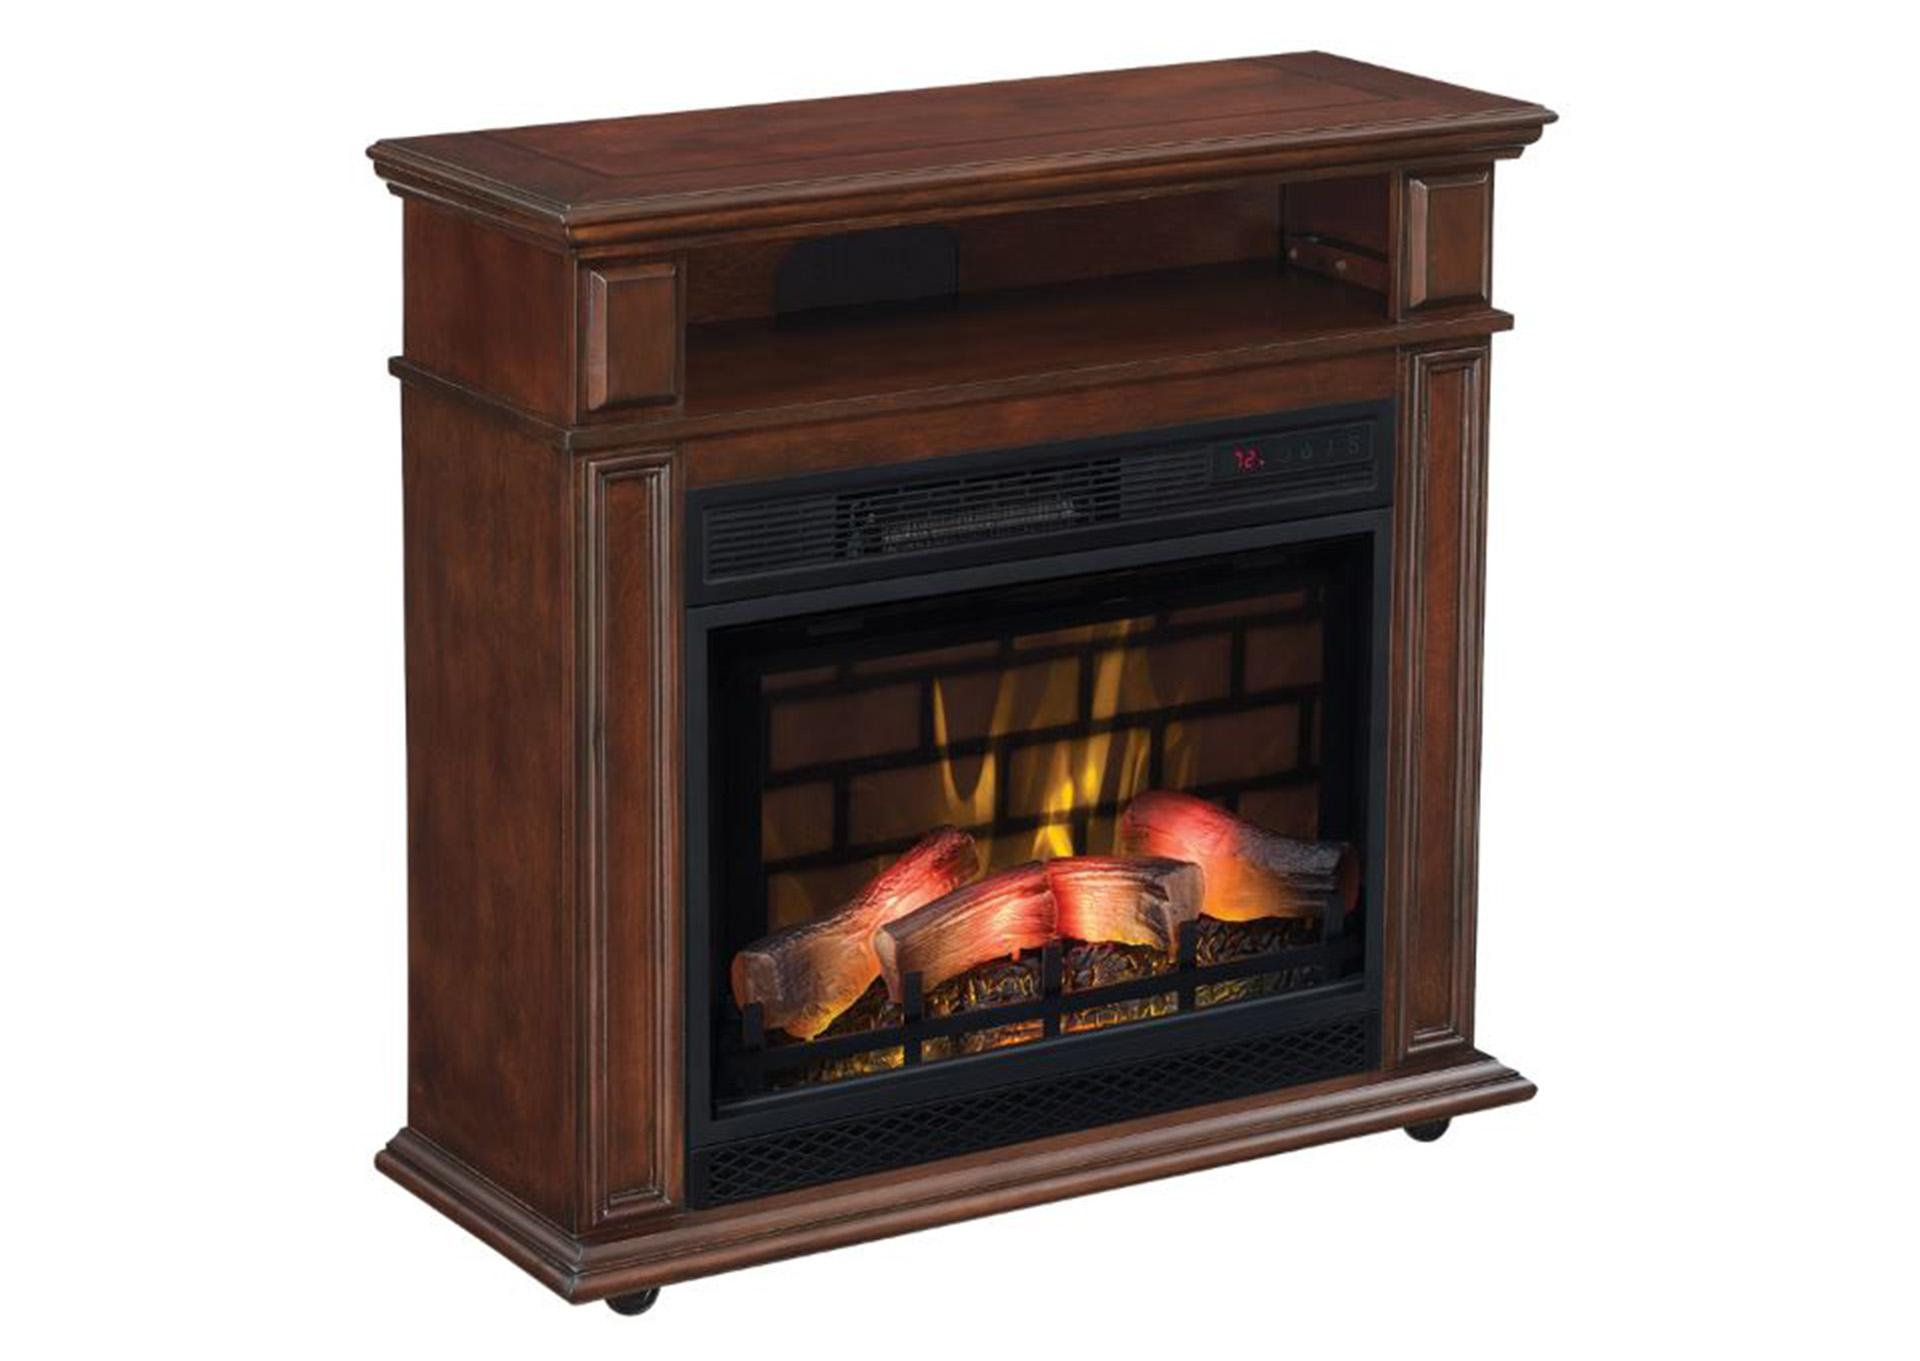 Mantle Fireplace,InStore ONLY